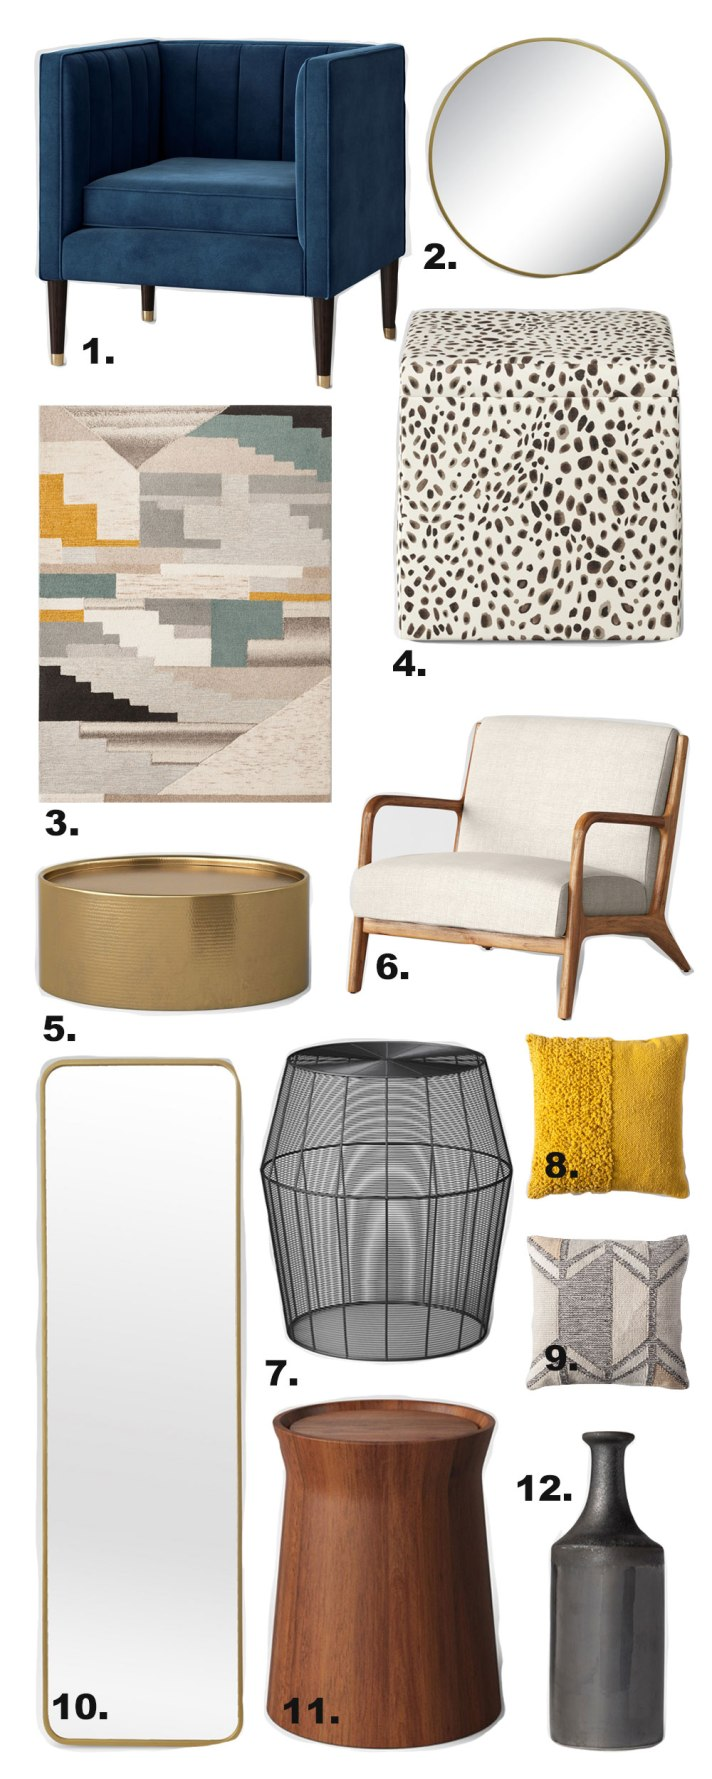 Best of Target Project 62 - decorate your home on a budget with targets new line of homewares. Mid century modern design meets functional homewares.